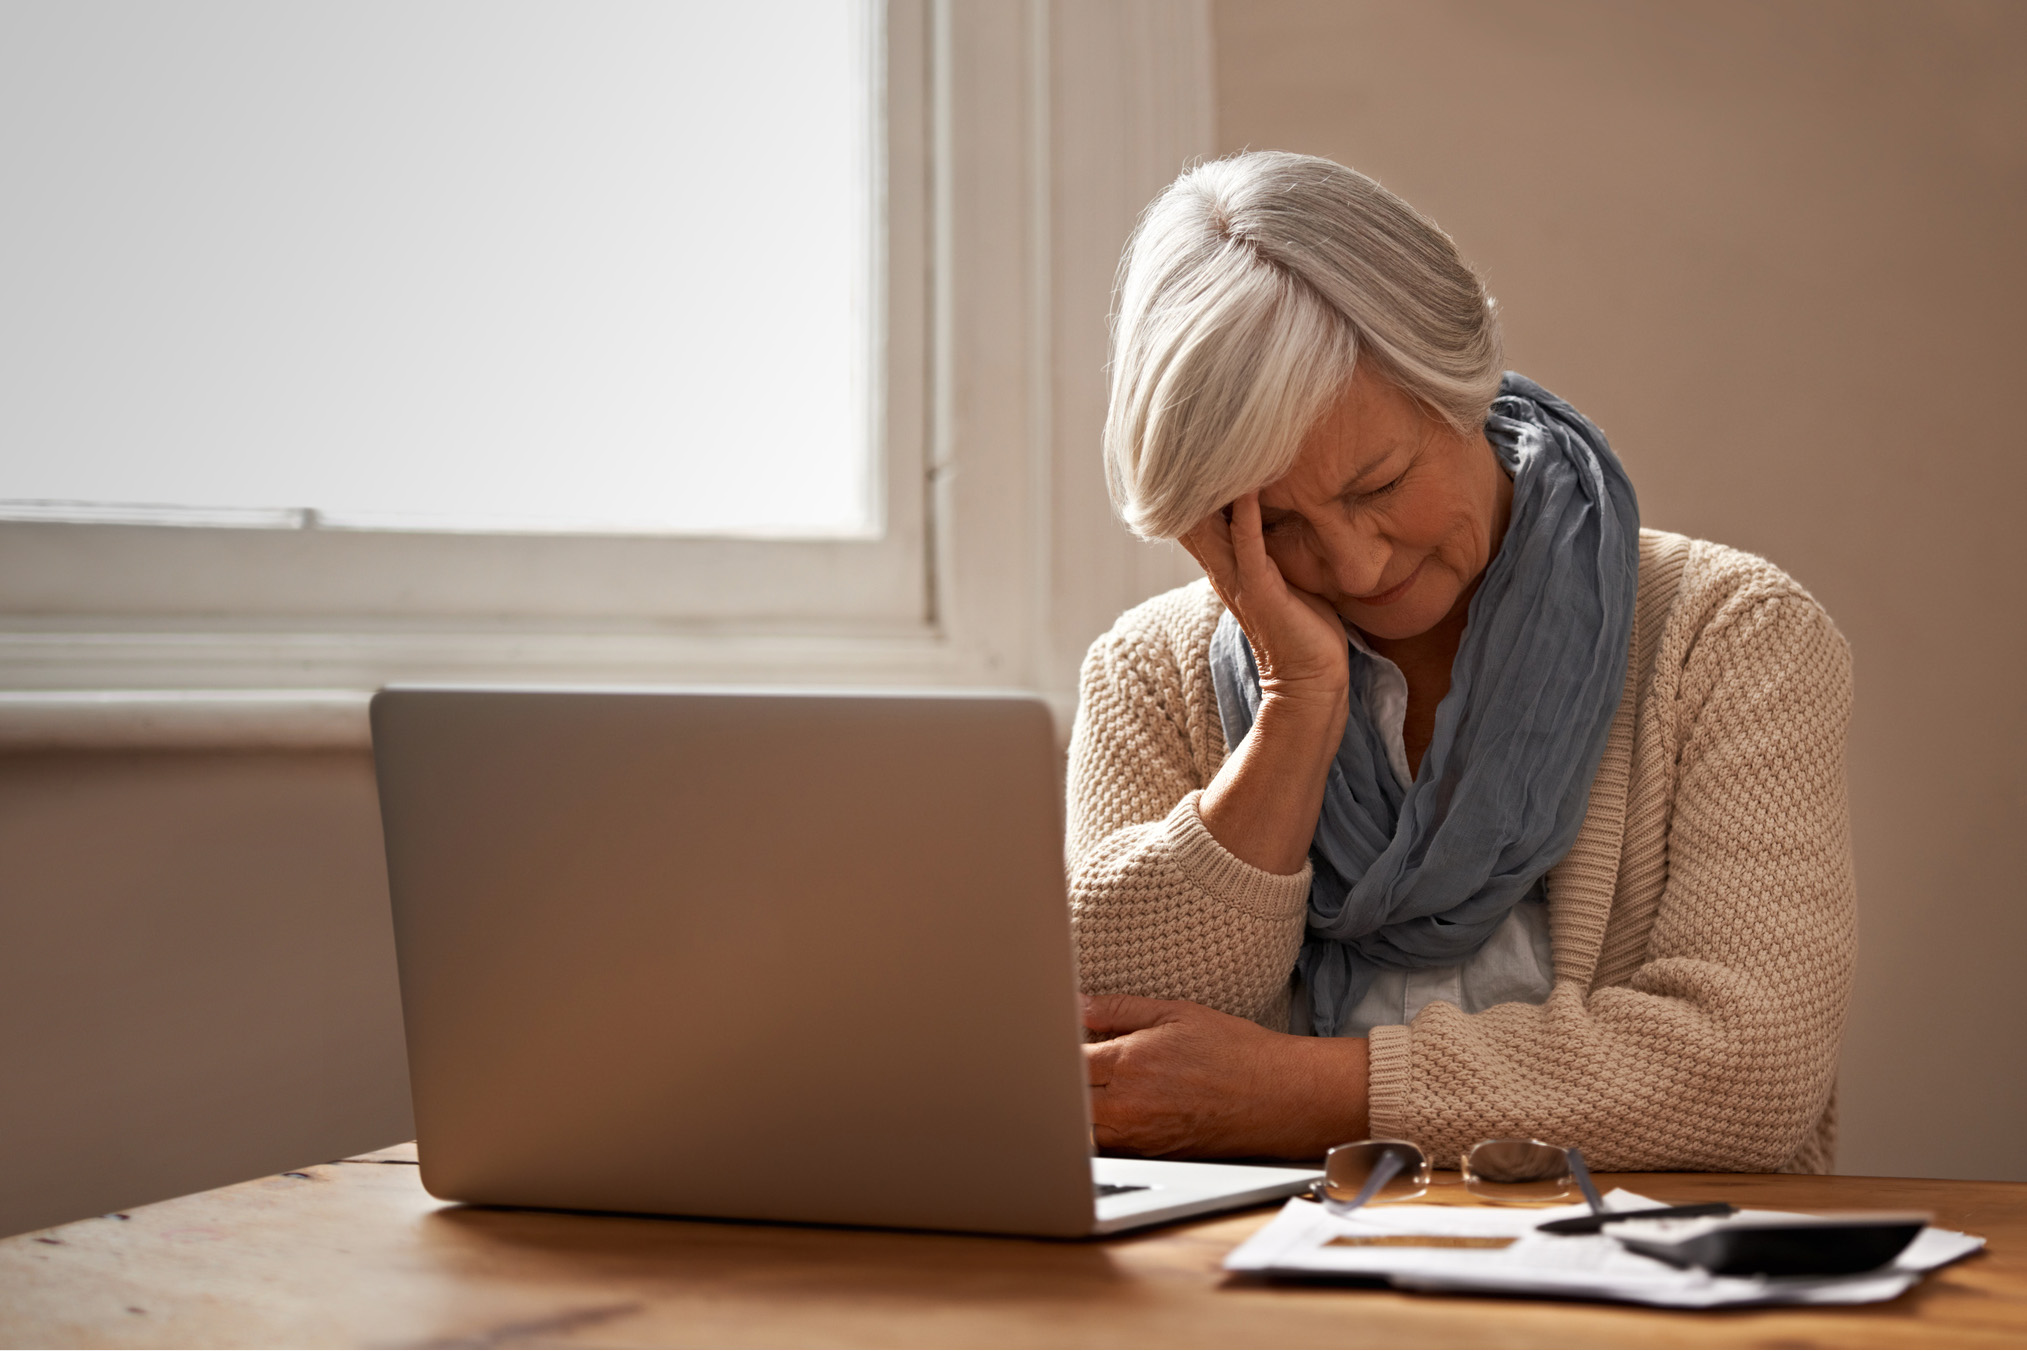 An elderly woman sitting in front of her laptop looking stressed. (PeopleImages via Getty Images)